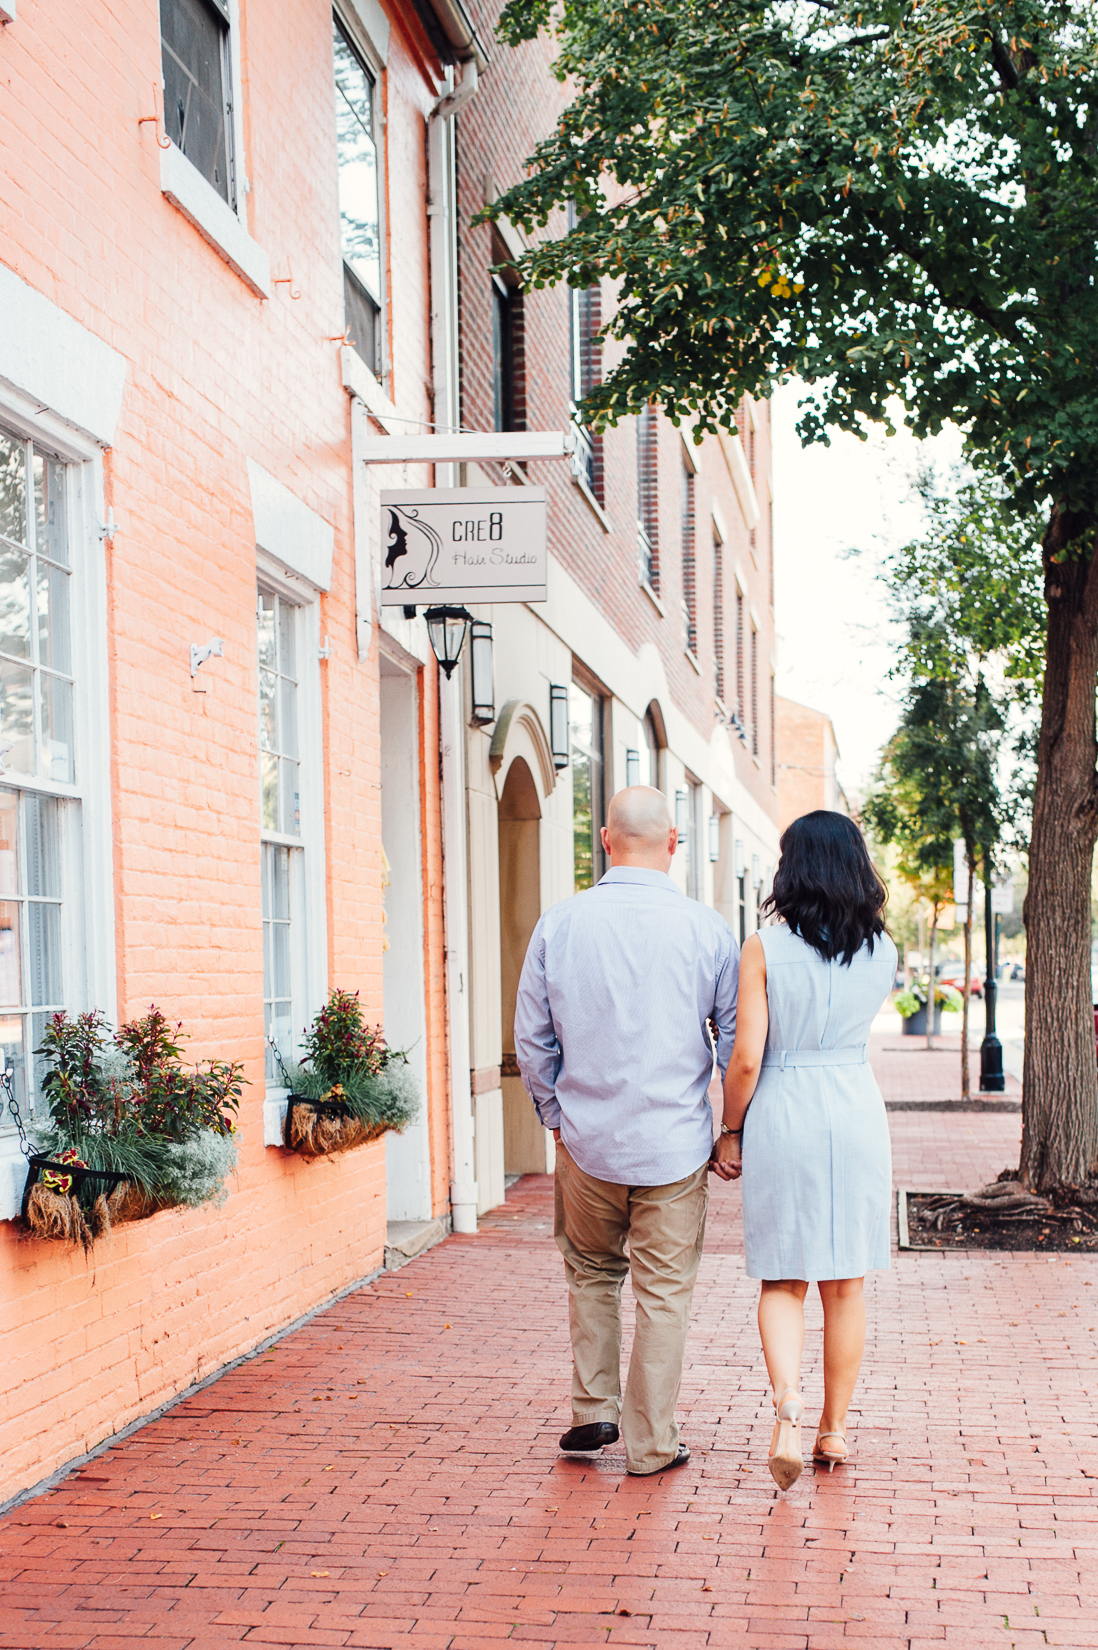 engagement_downtown_fredericksburg_virginiaweddingphotographer_youseephotography_HelenPaul (1).jpg